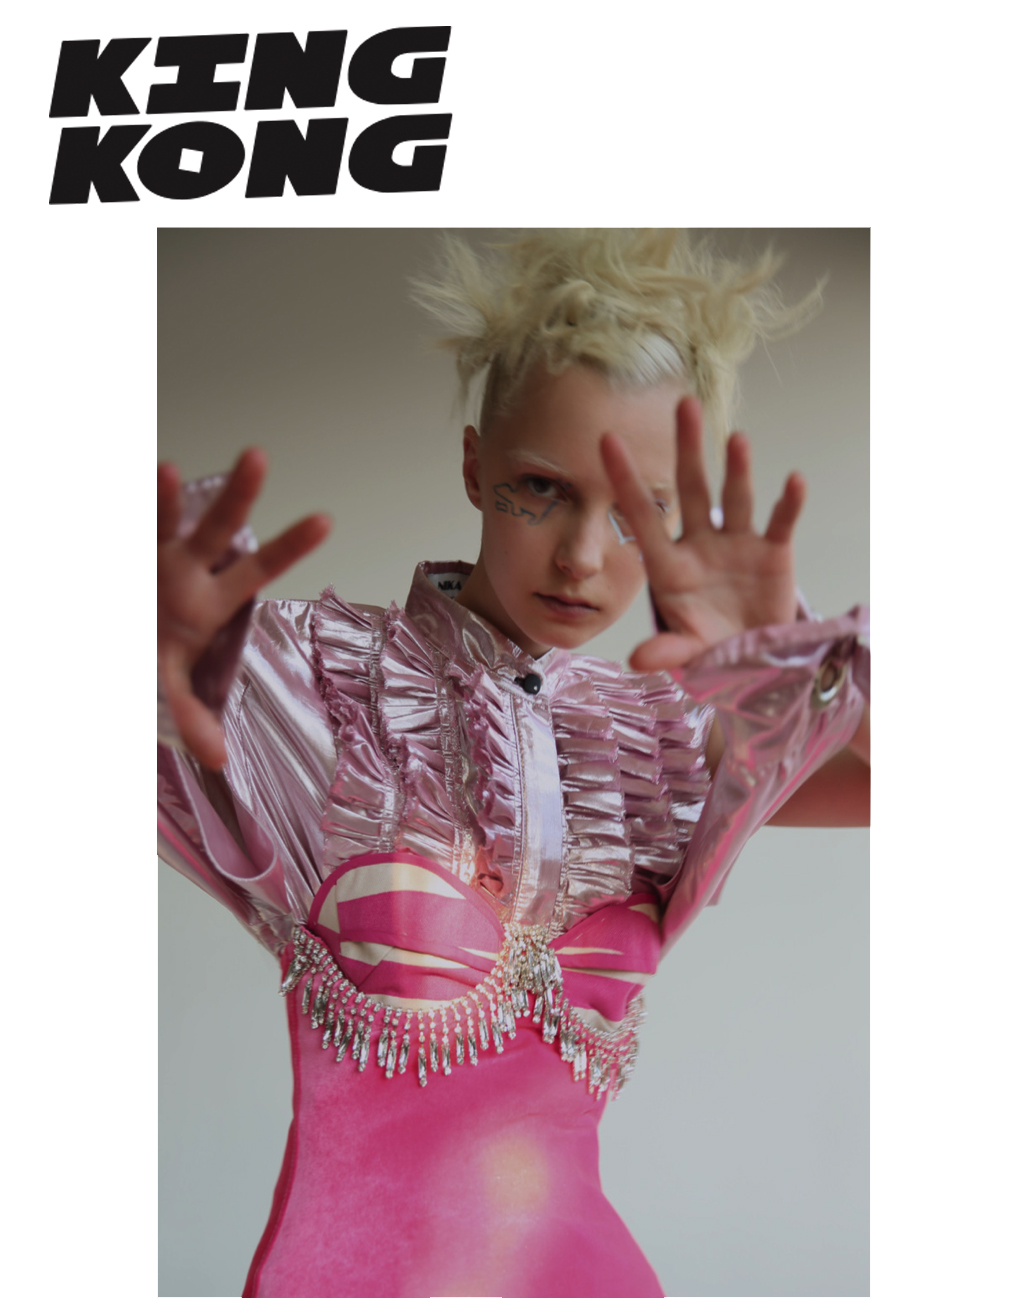 King Kong Magazine fashion editorial feature Kelsey Randall pink striped canvas bustier bra top leotard crystals metallics hot pink avant garde made-to-measure custom bespoke luxury womenswear sustainable ethical diverse unique special made in New York City NYC Brooklyn Bushwick handcrafted  photographs   FRANCO SCHICKE   styling   HERIN CHOI   hair   SONNY MOLINA   make up   YUUI VISION  using M.A.C cosmetics  model   IRINA LISS  | MUSE NYC